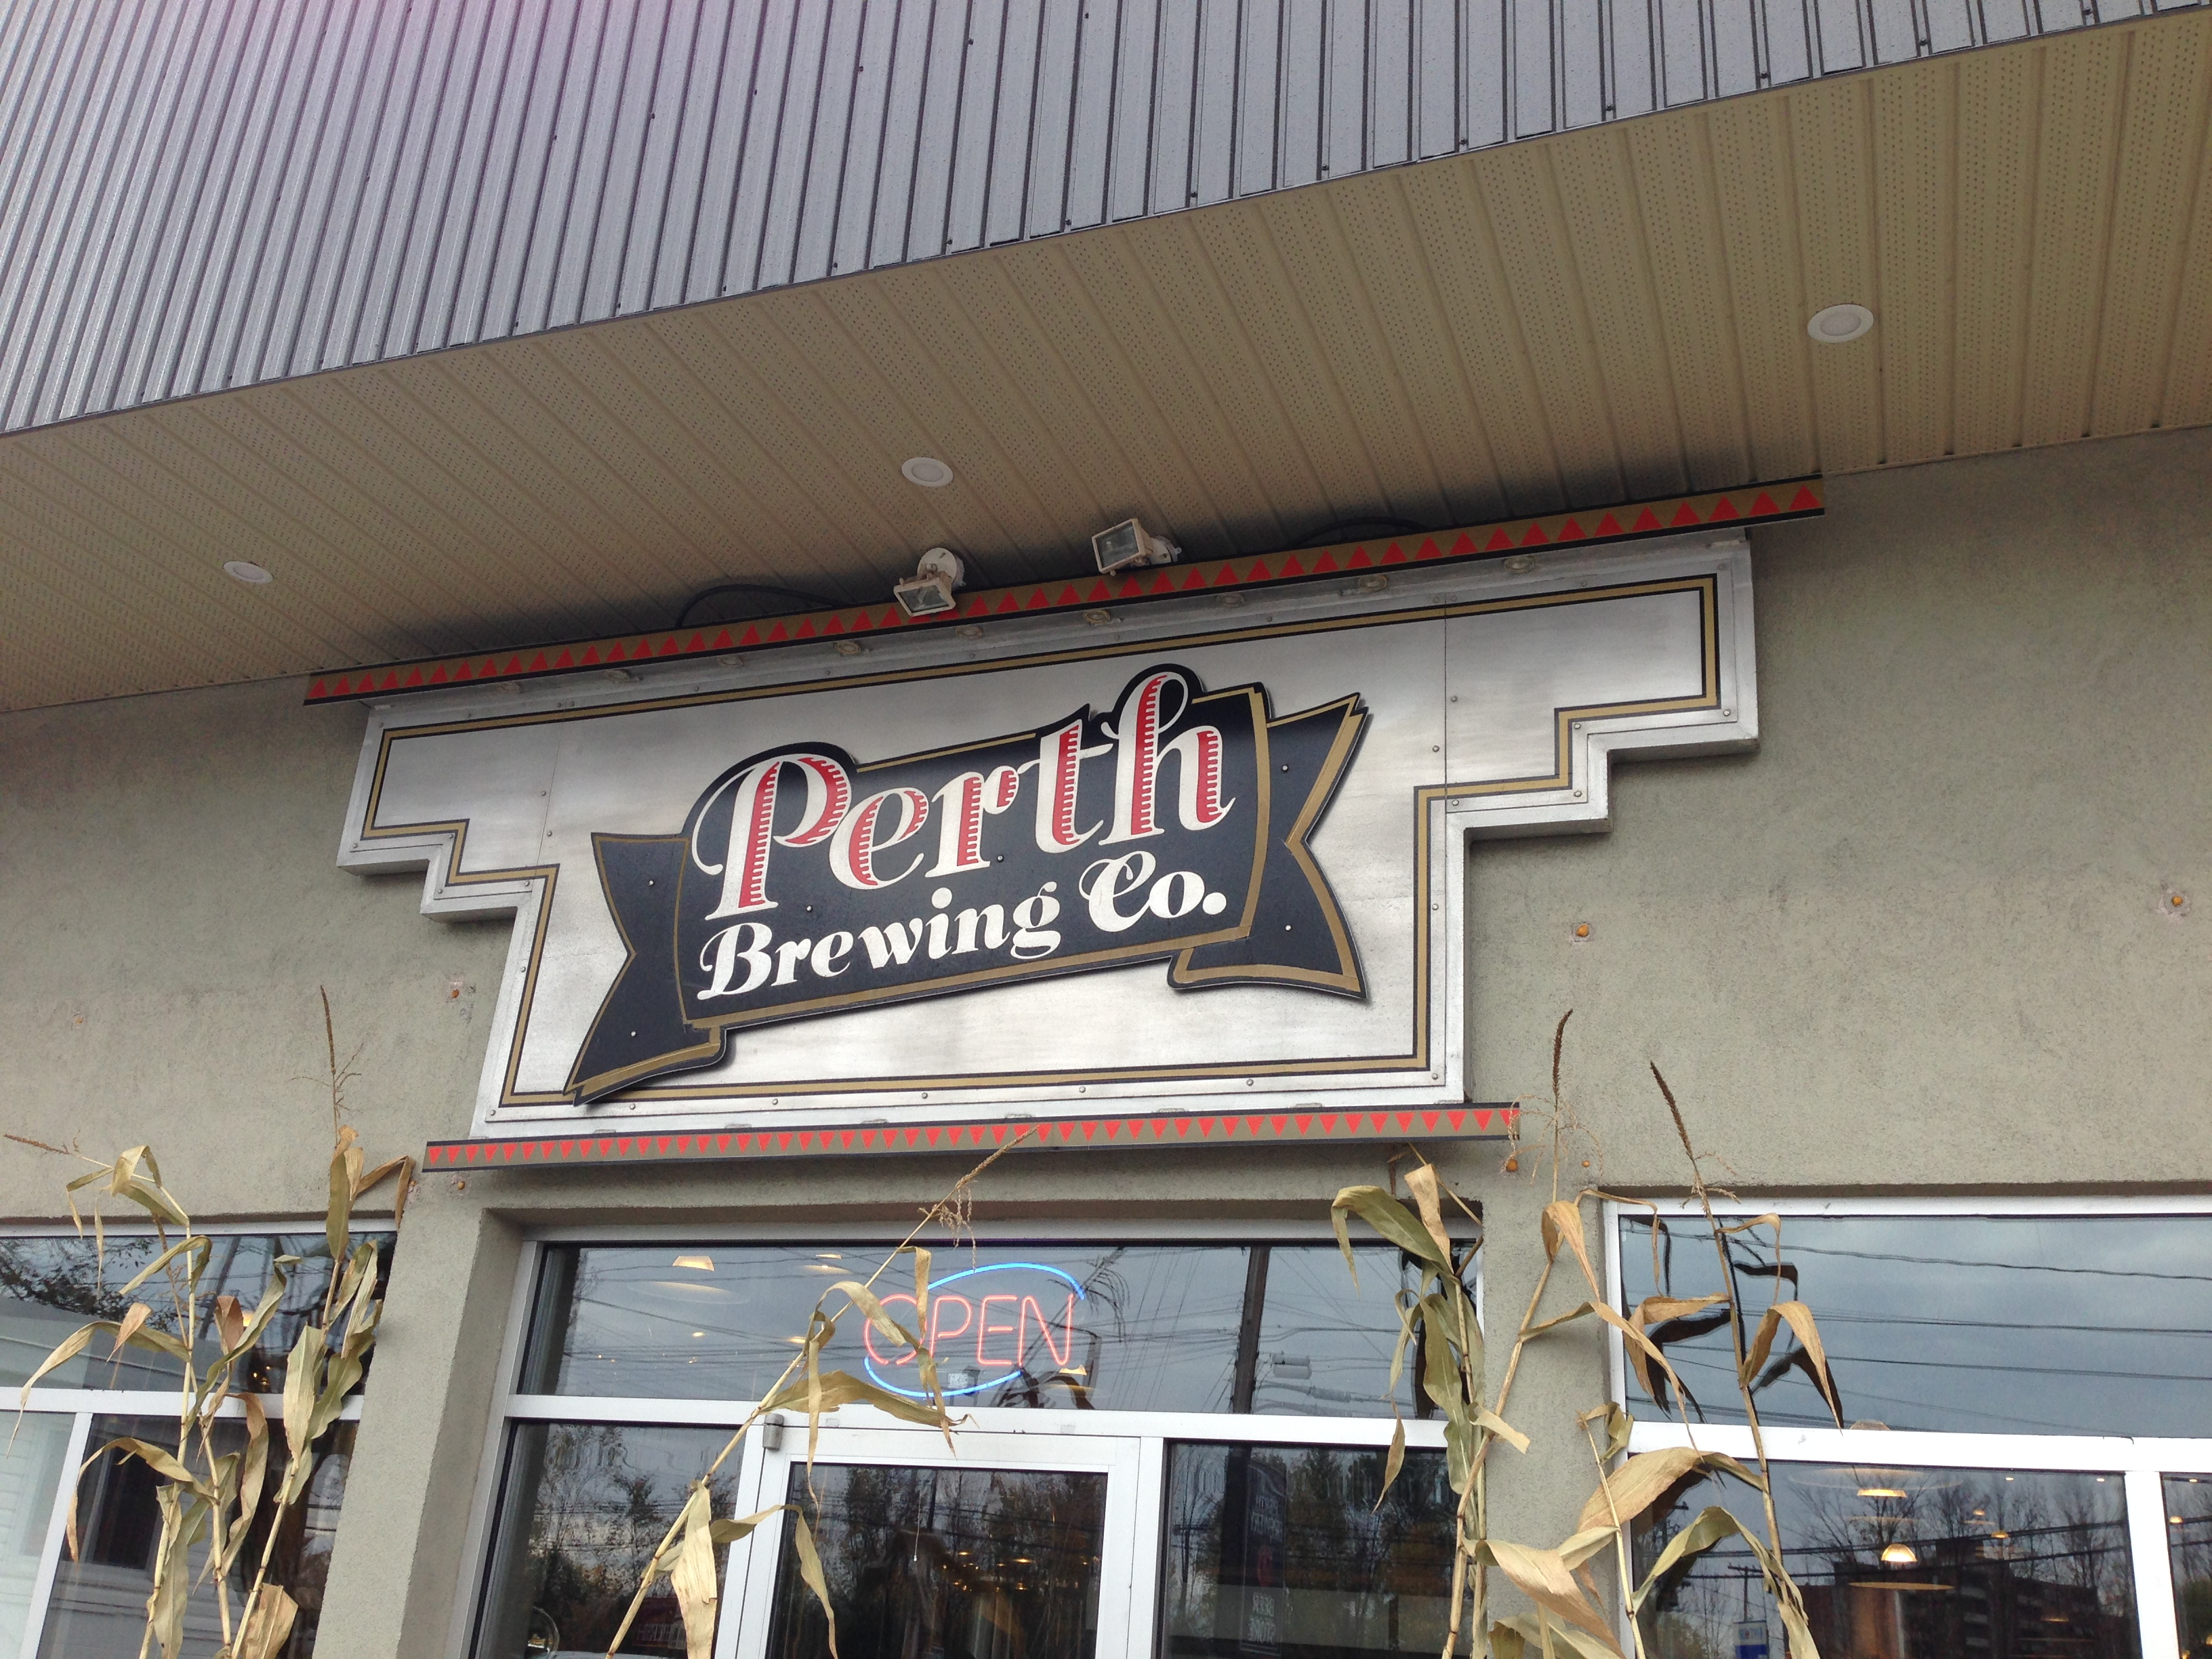 Perth Brewing Company